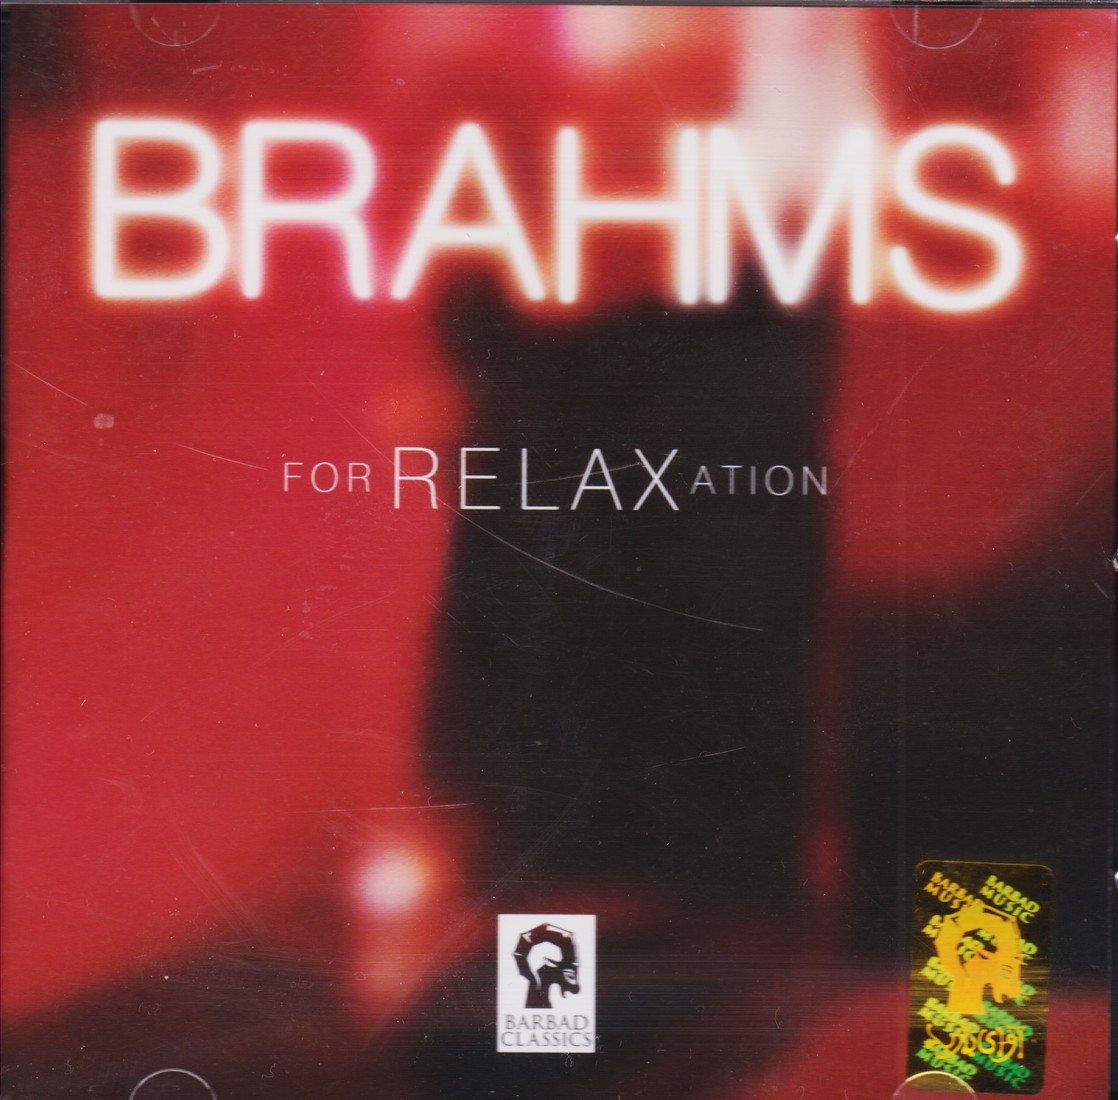 BRAHMS for relaxtion